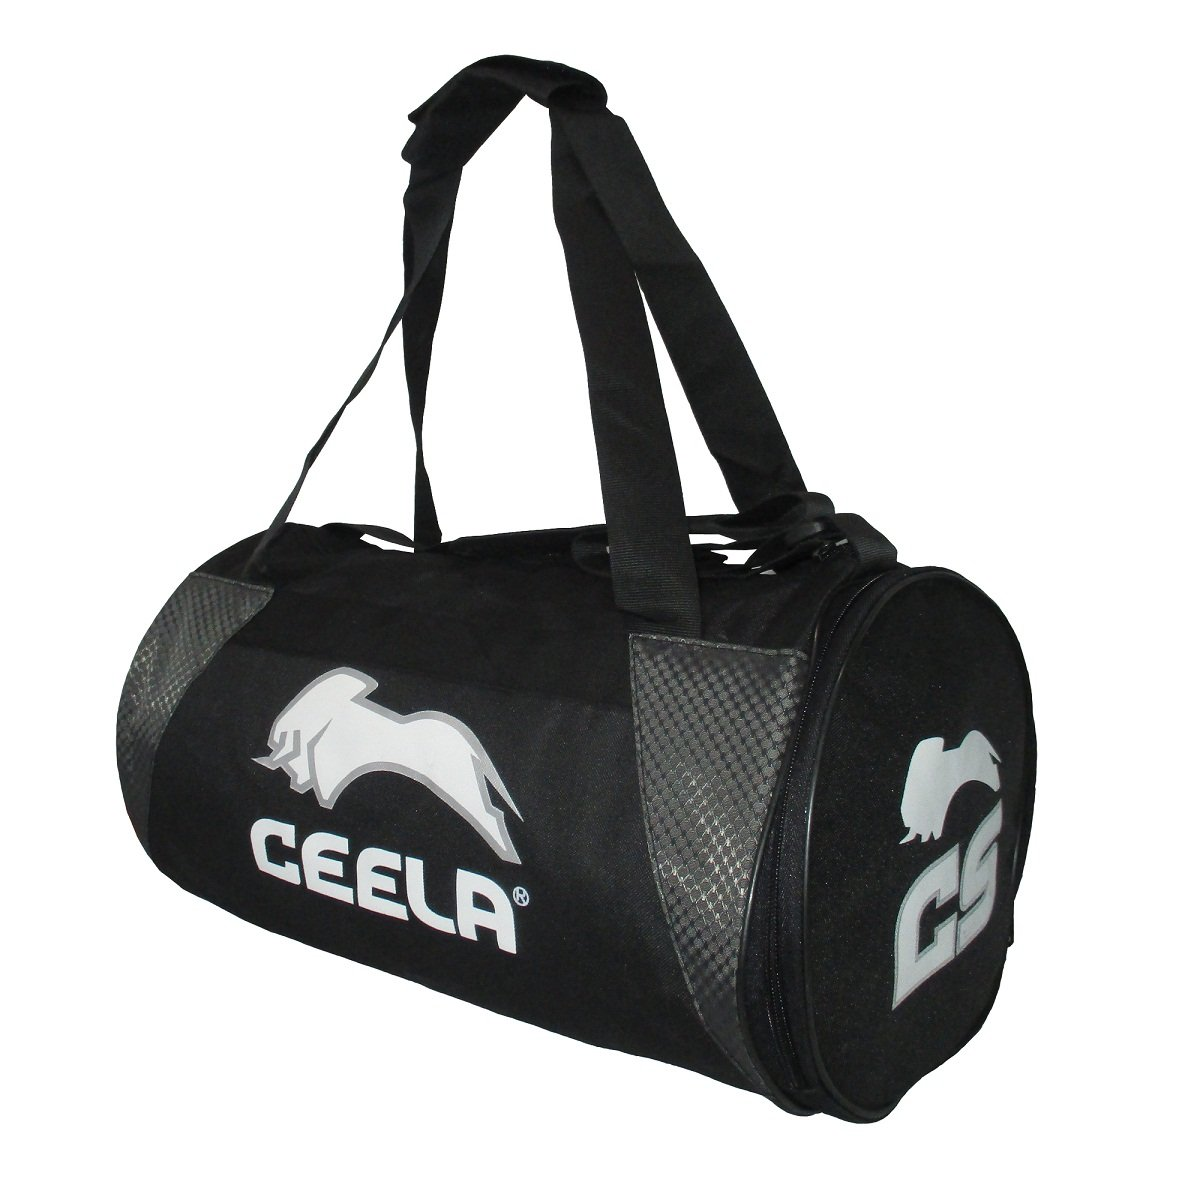 Gym Bag Flipkart: Sabis Bulldog Athletics